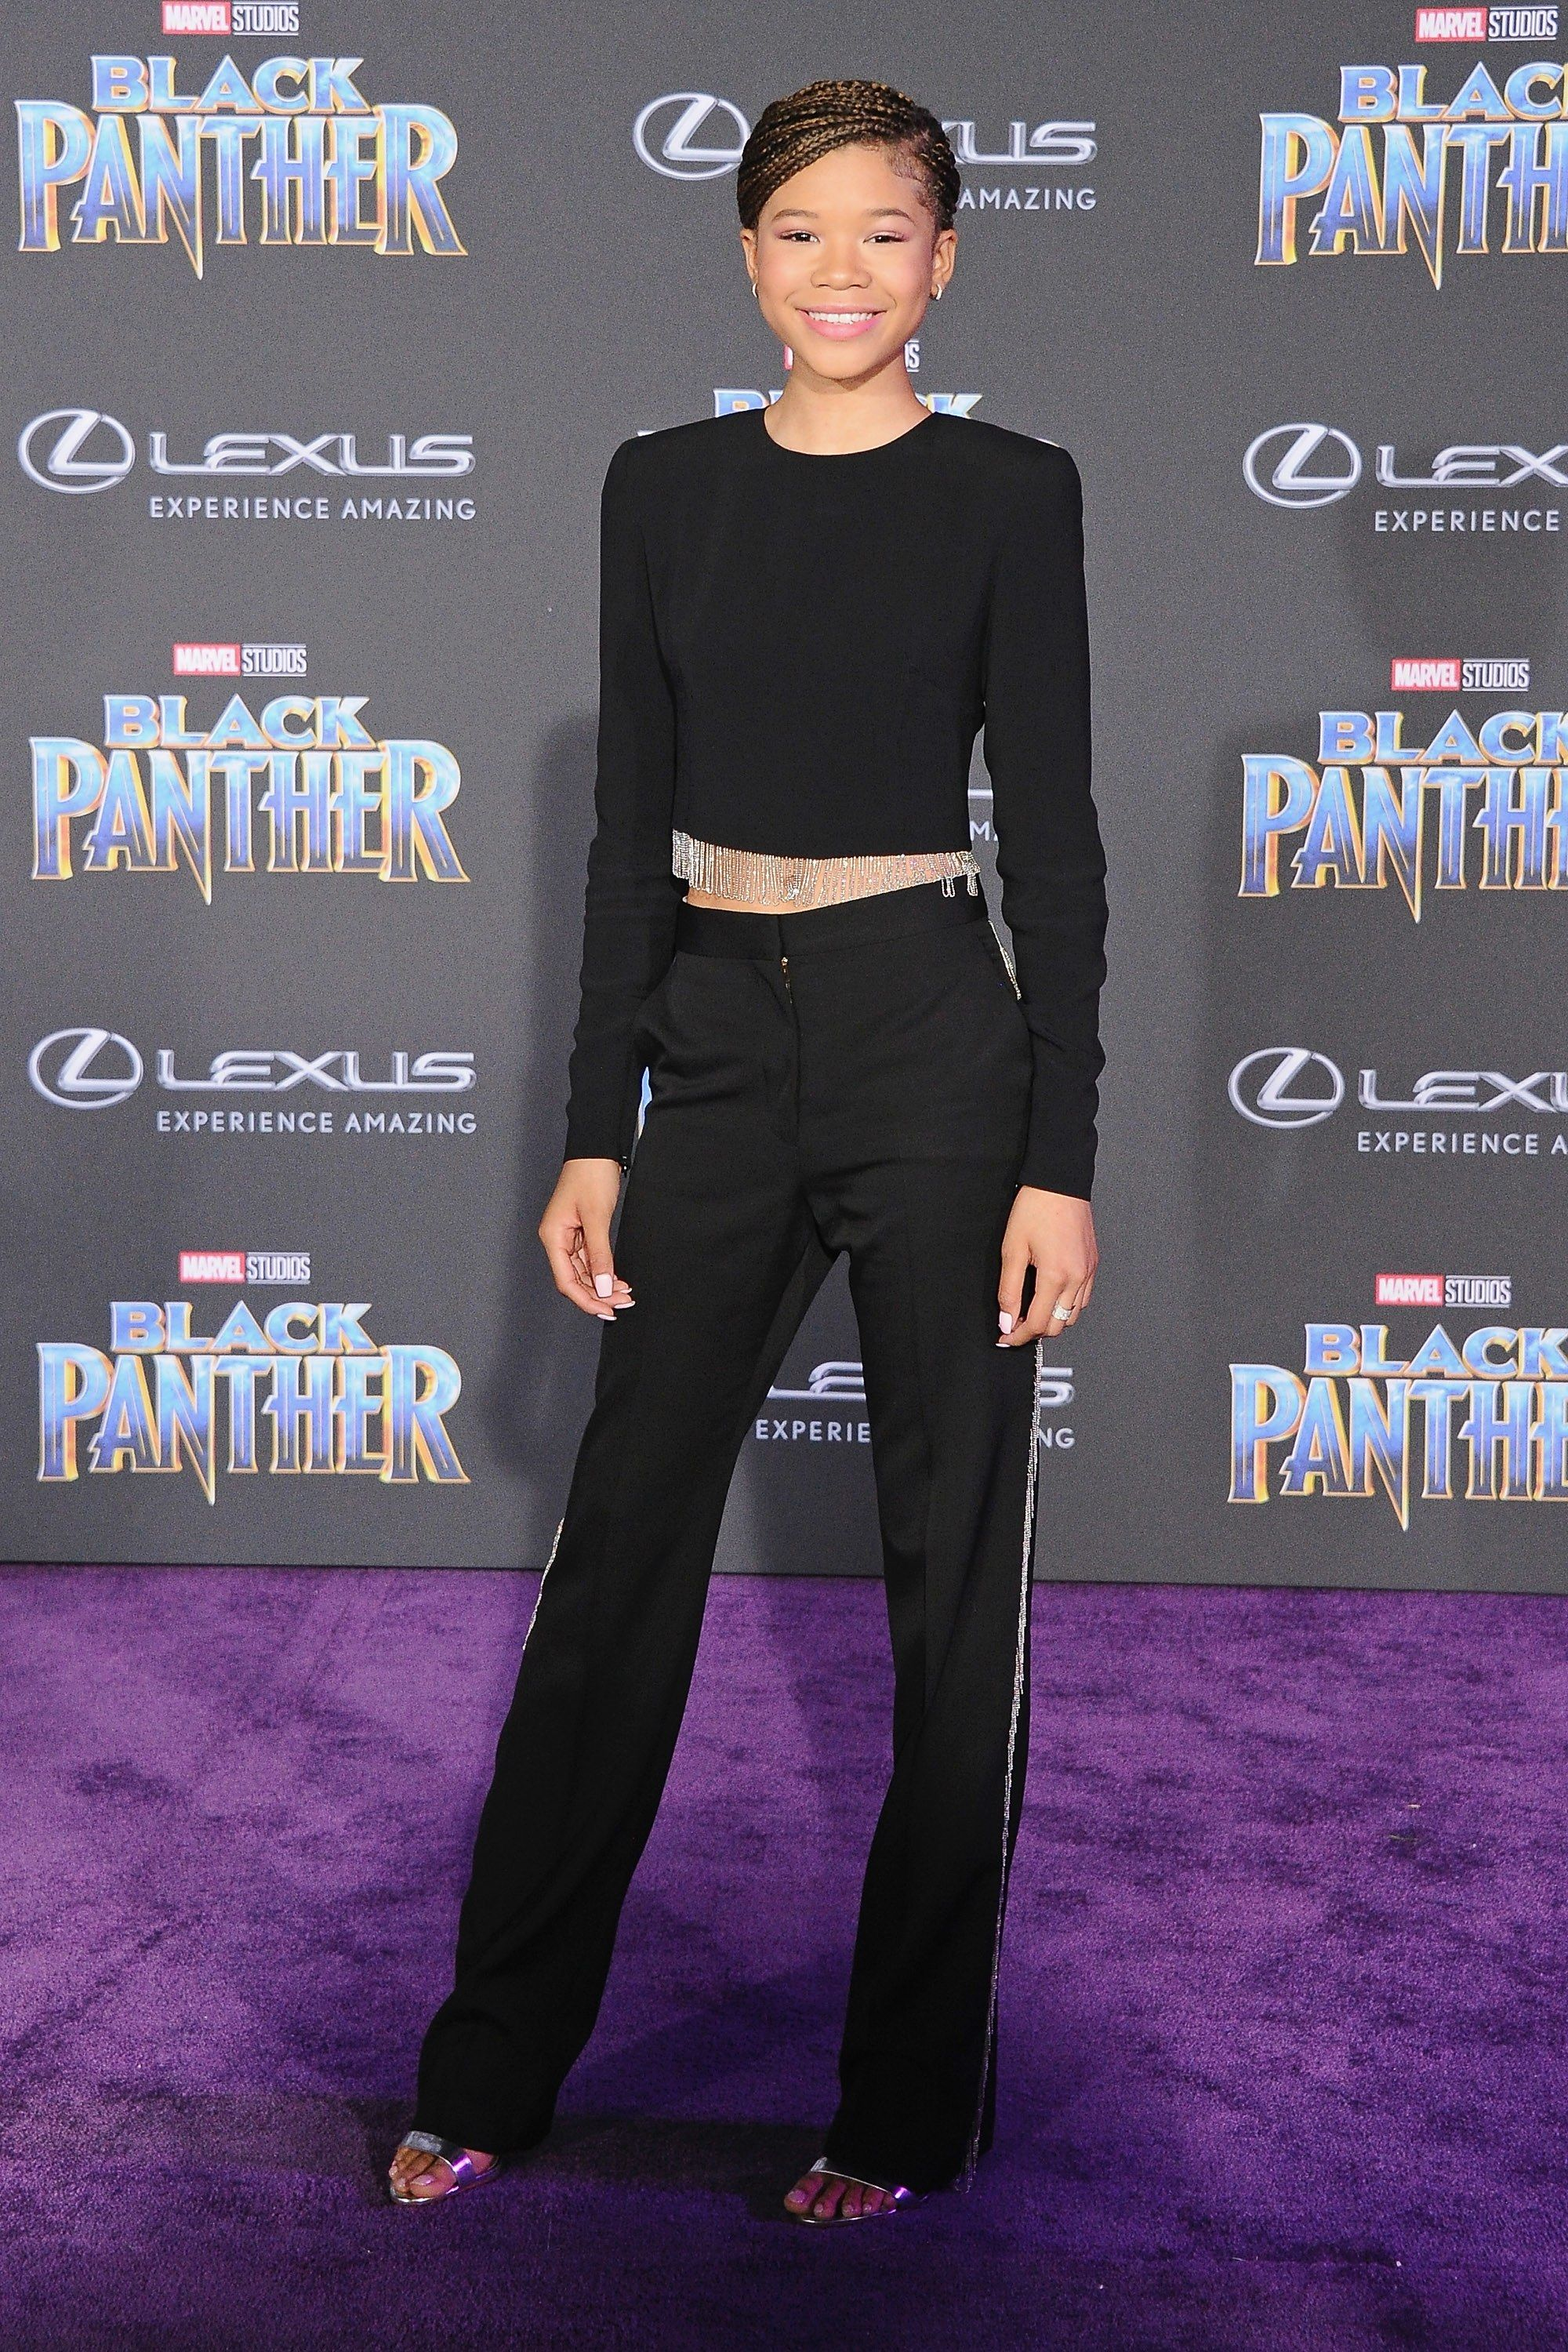 The Black Panther Red Carpet Was A Study In Black Excellence Best Celebrity Dresses Red Carpet Outfits Celebrity Look